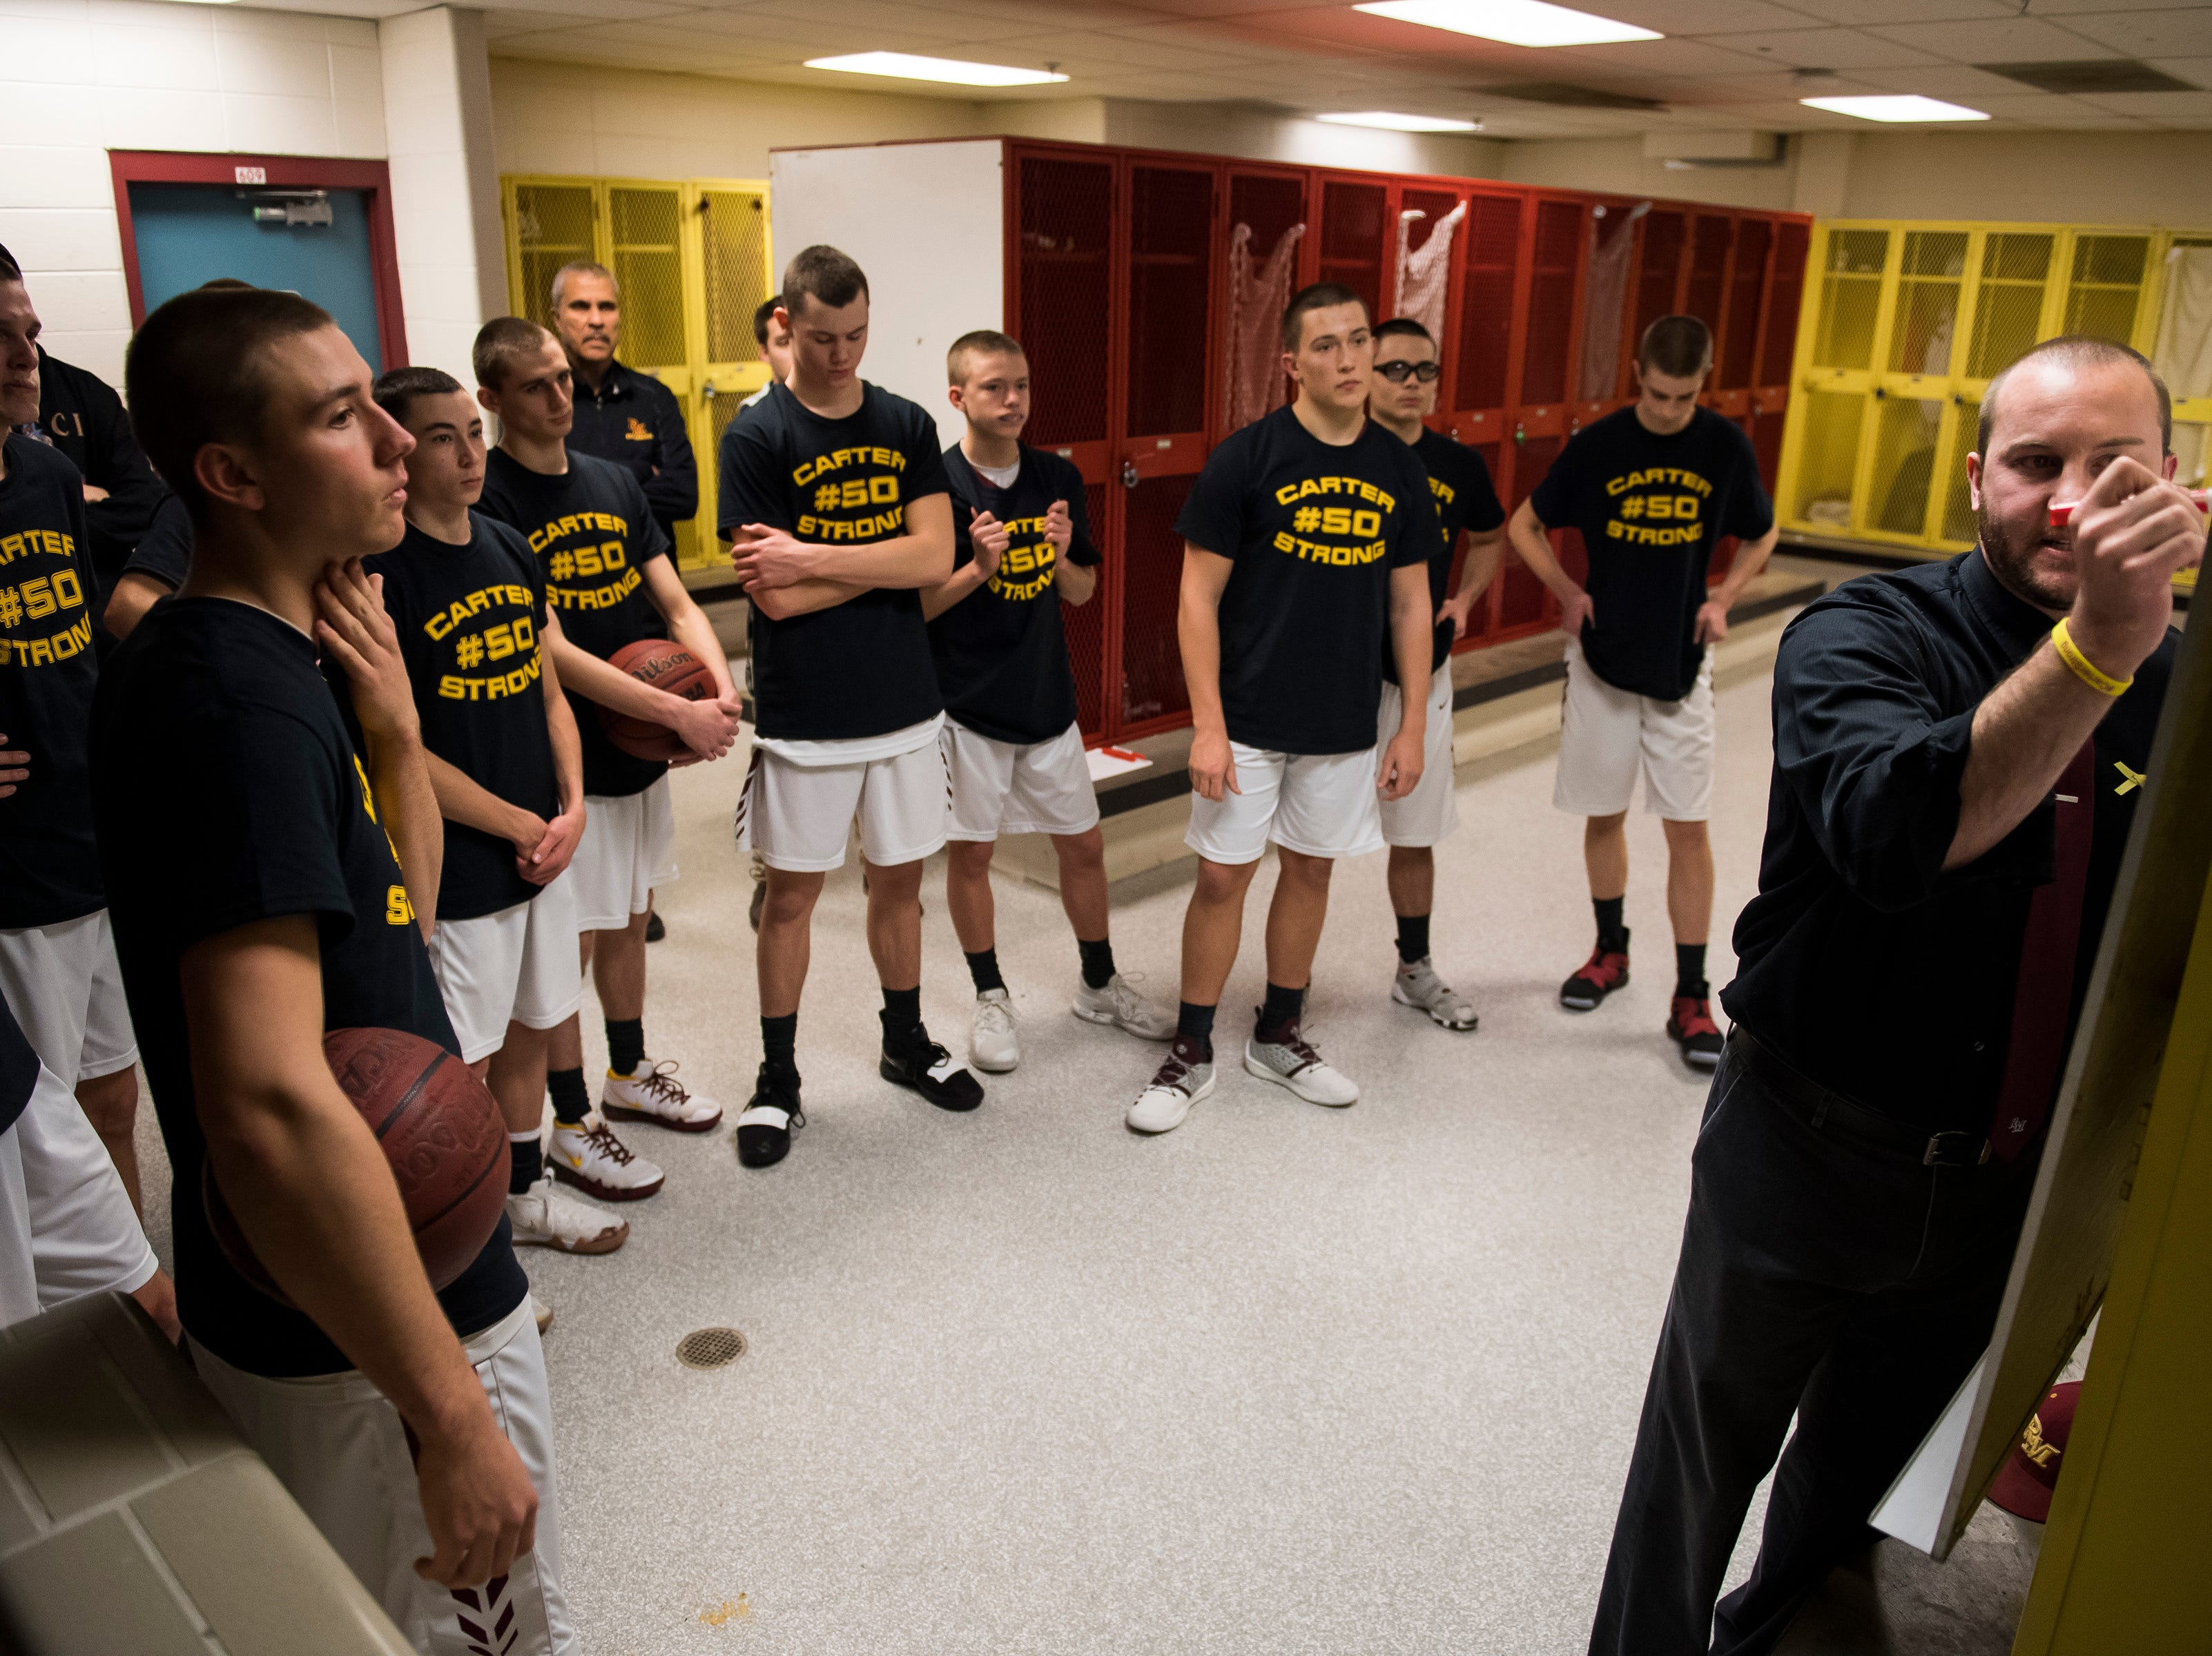 Rocky Mountain High School head boys basketball coach Brian Tafel strategizes while his players in h locker room before a game against Fort Collins High School on Friday, Jan. 18, 2019, at Rocky Mountain High School in Fort Collins, Colo.